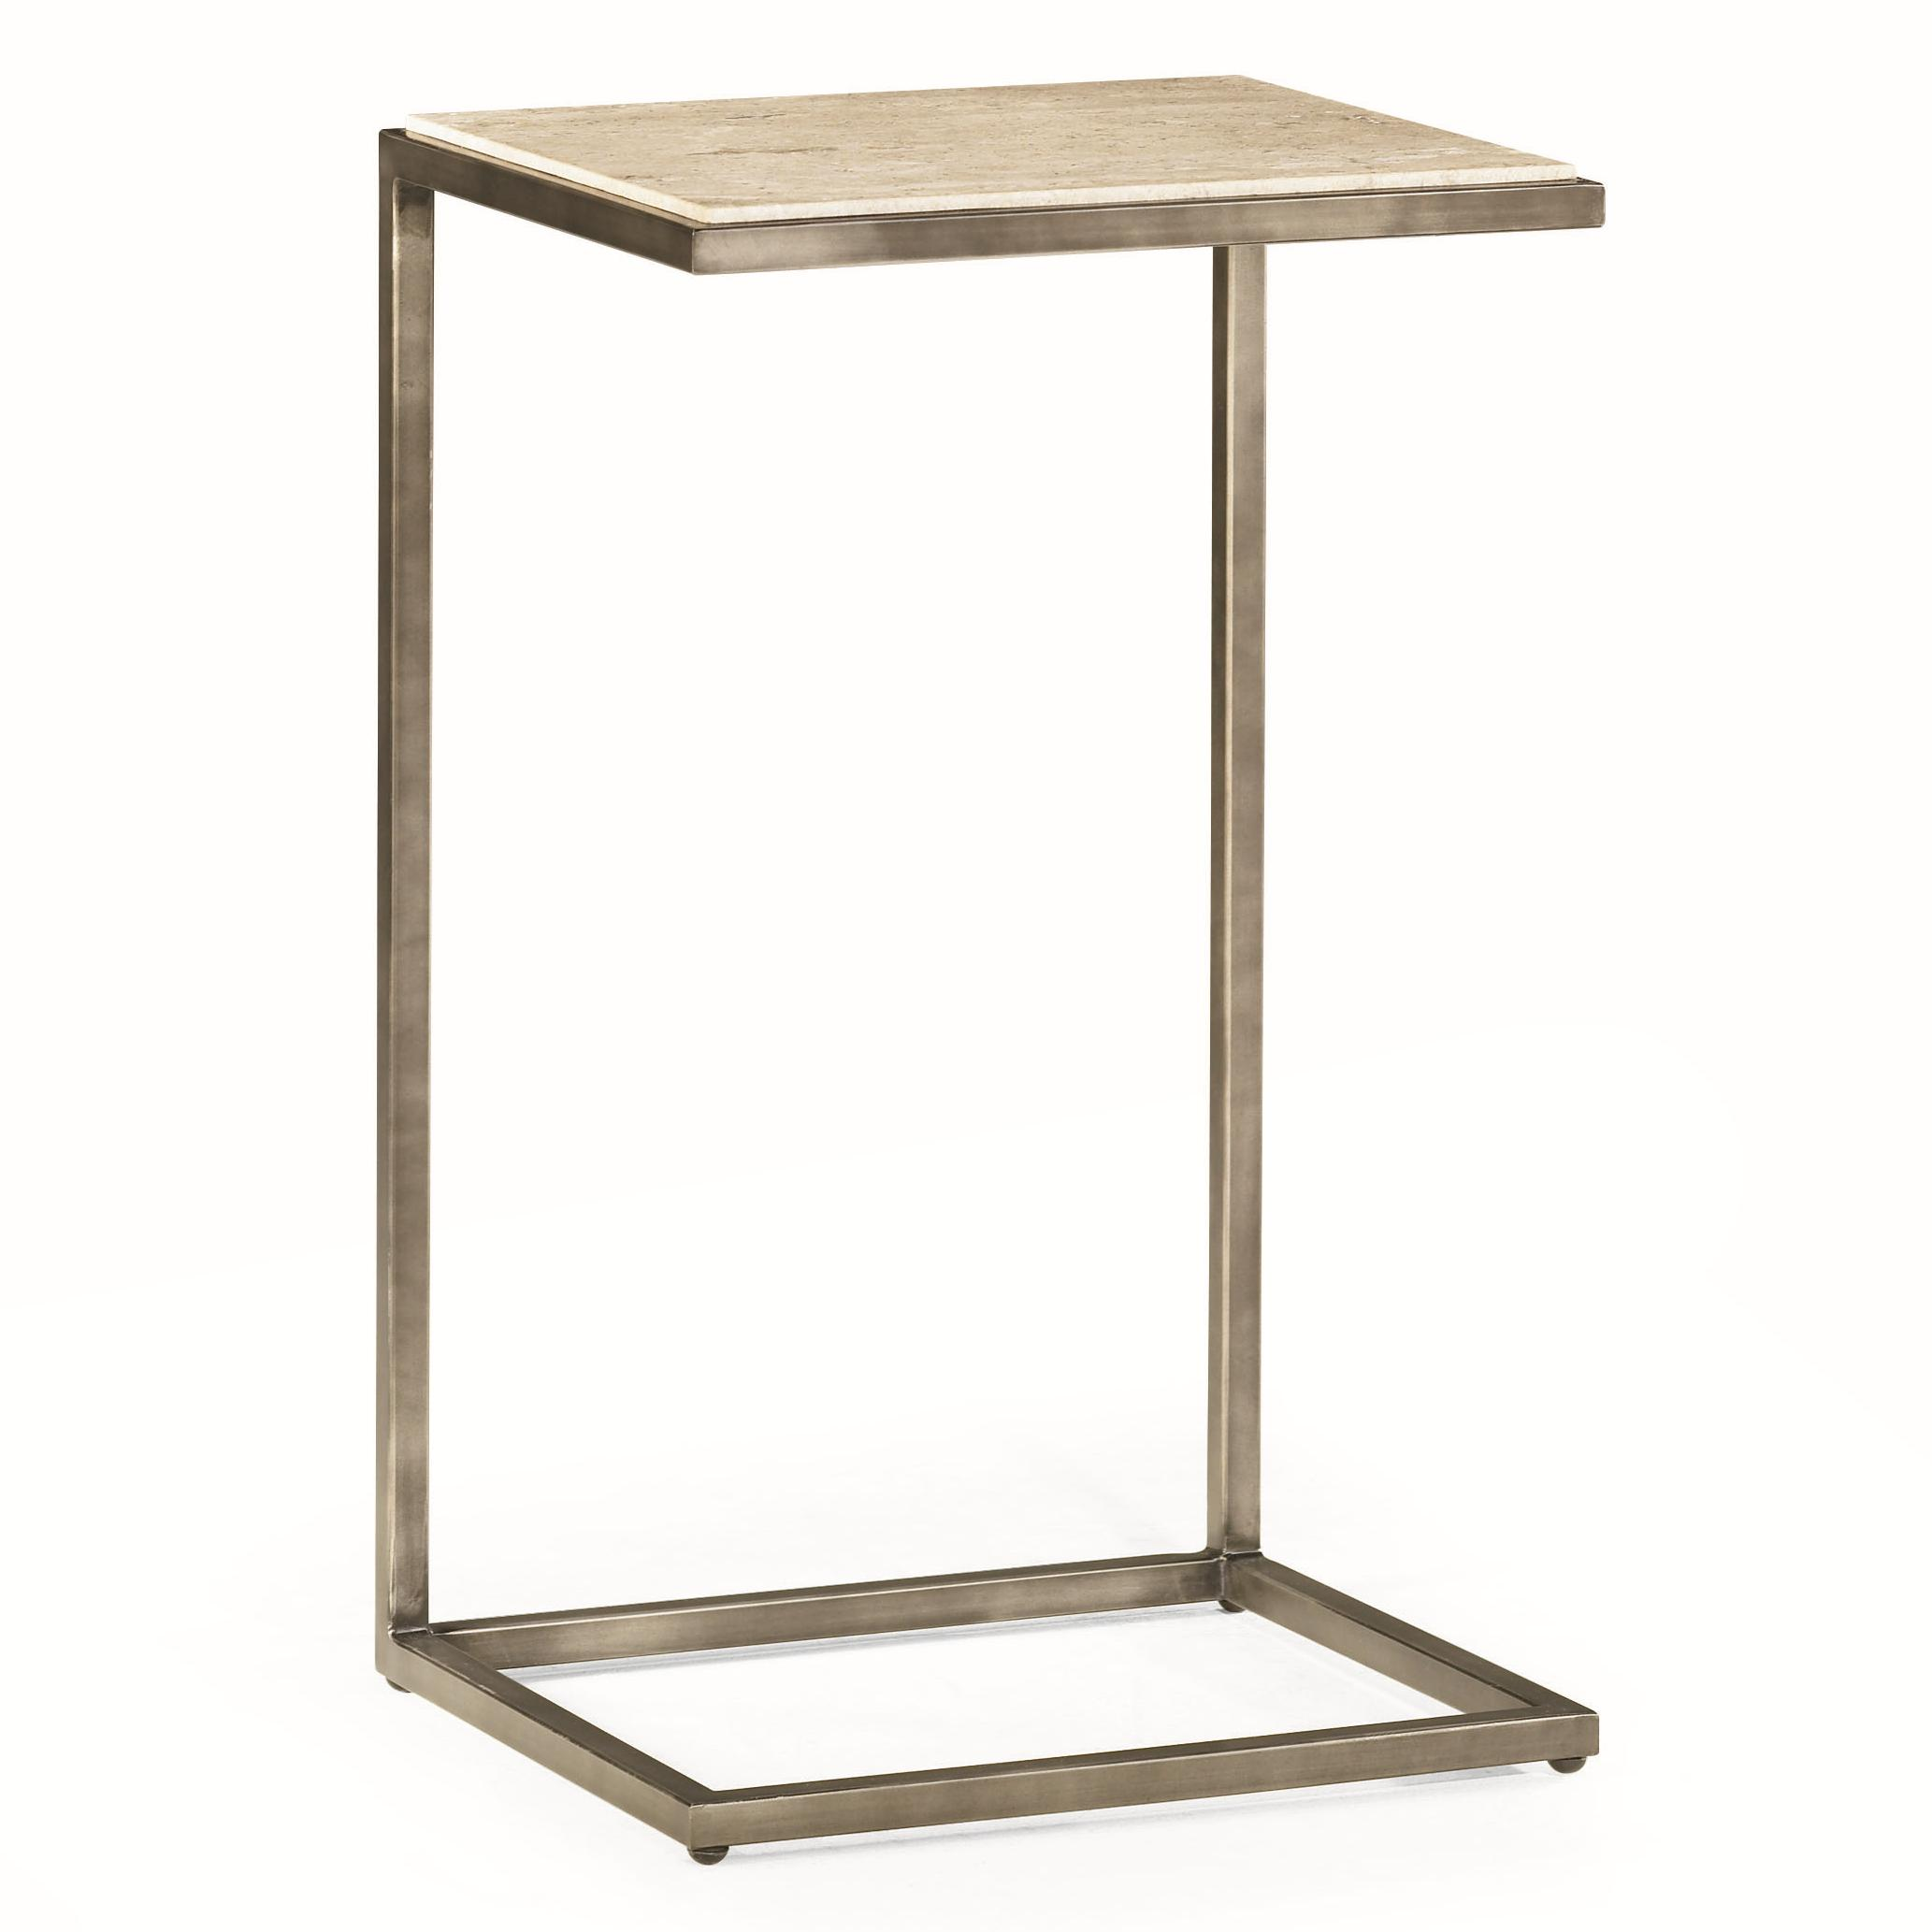 Rectangular Accent Table with Bronze Finish by Hammary